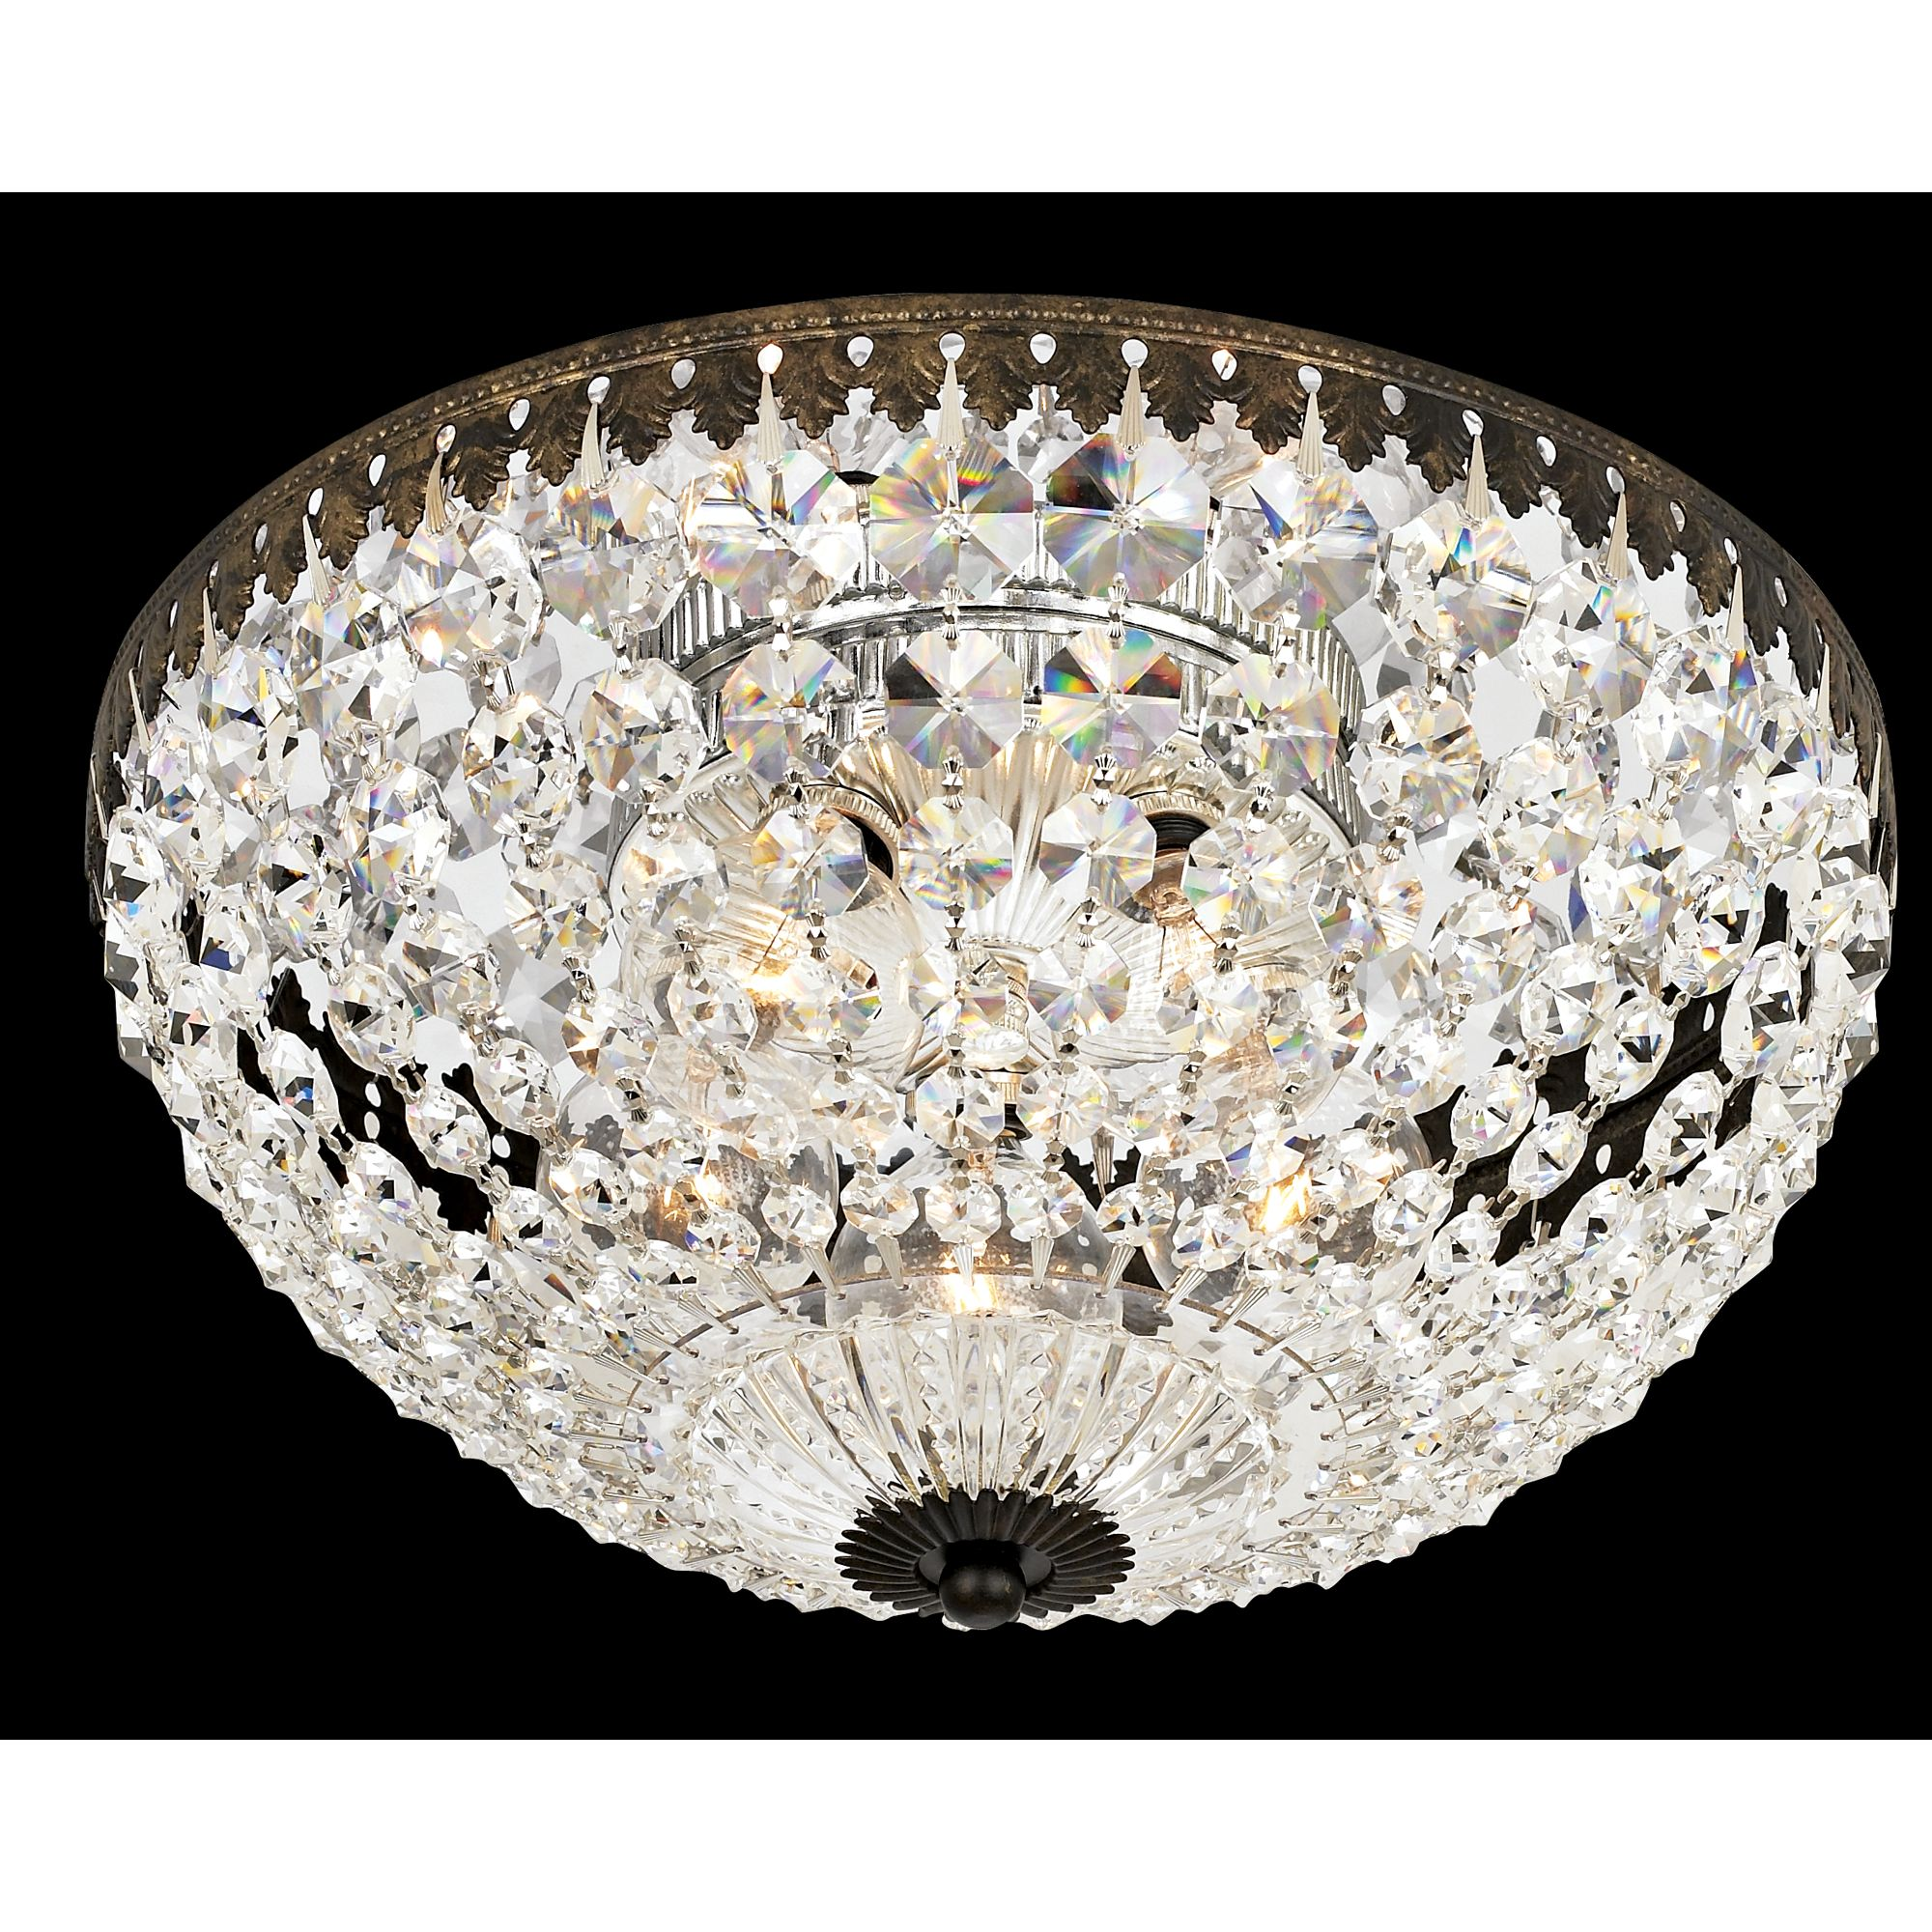 "Schonbek Empire Spectra Crystal 12"" Wide Ceiling Light by Schonbek"